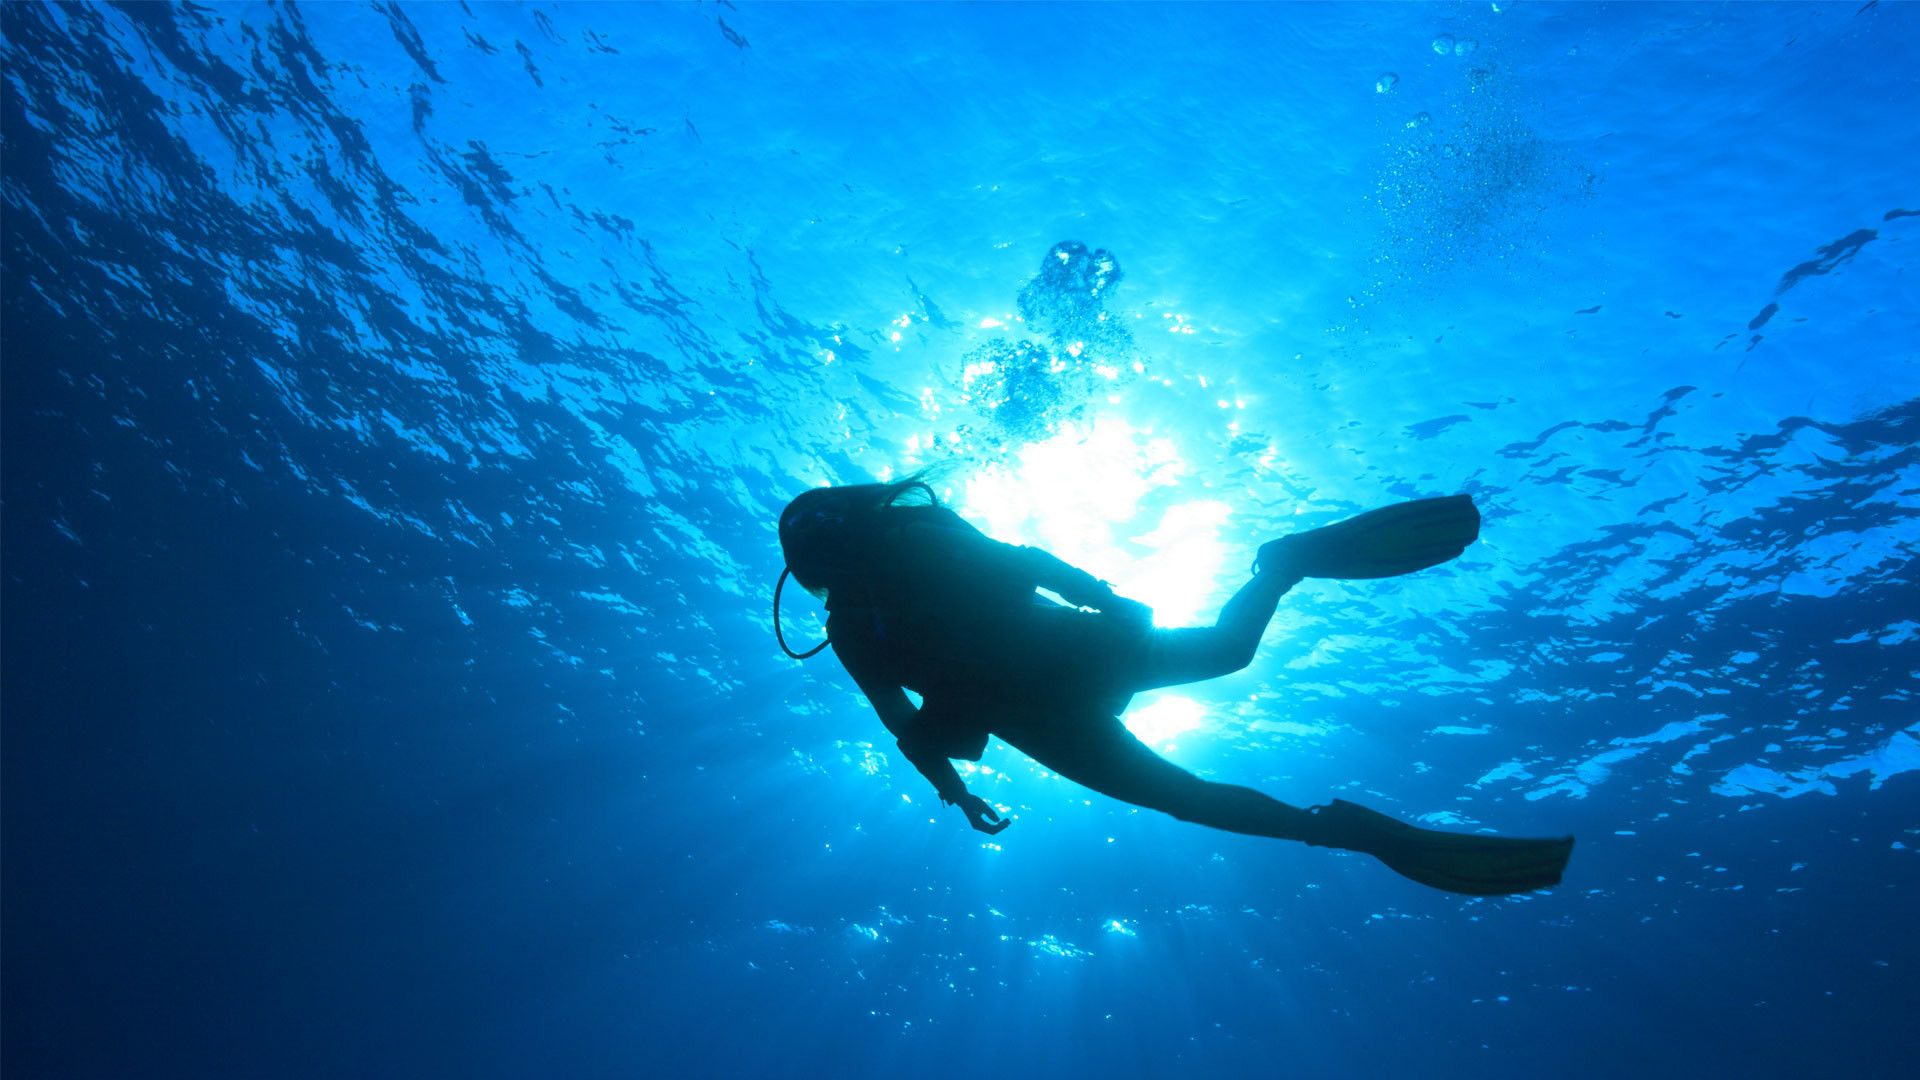 Scuba Diving Wallpapers Top Free Scuba Diving Backgrounds Wallpaperaccess